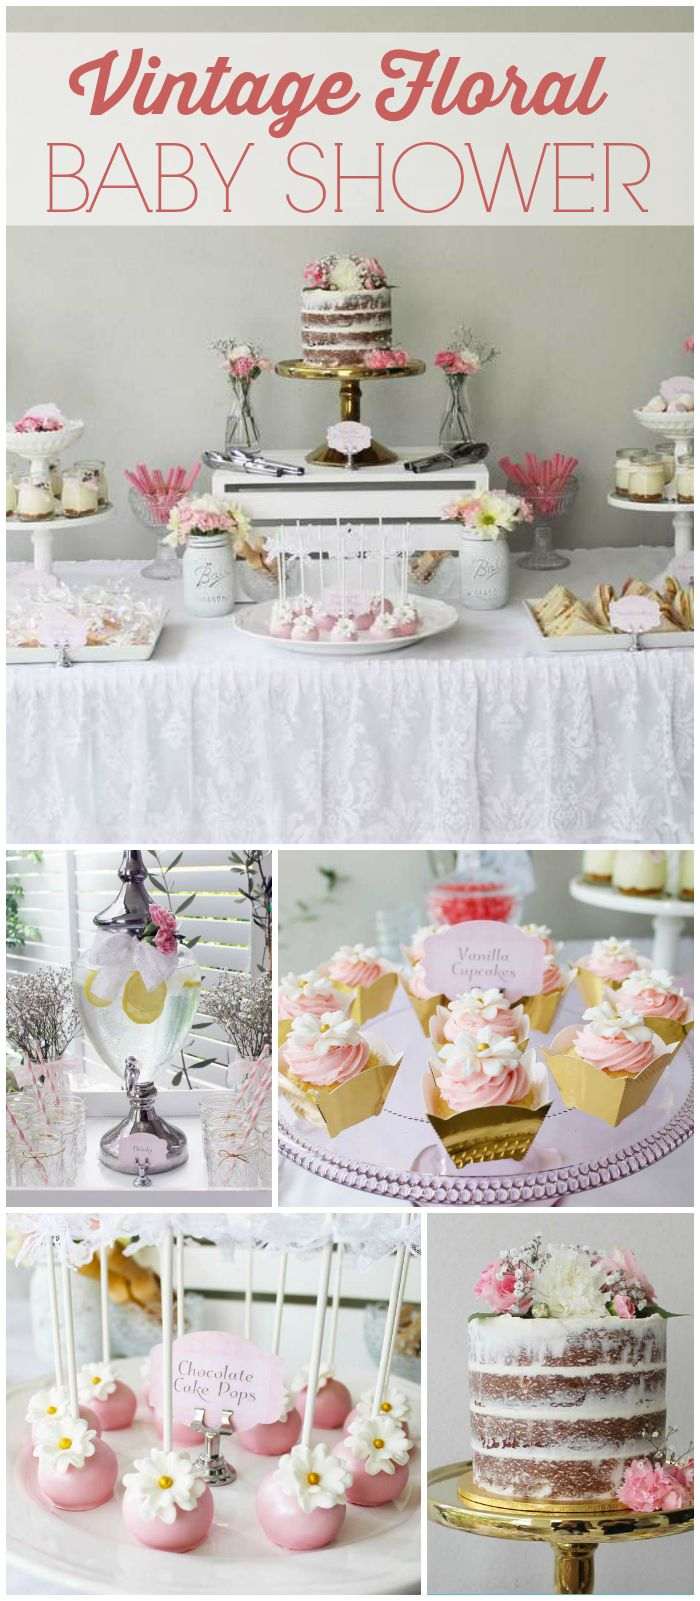 2455a261db8 A lovely vintage floral lace baby shower with a gorgeous cake and pretty  party decor! See more party planning ideas at CatchMyParty.com!